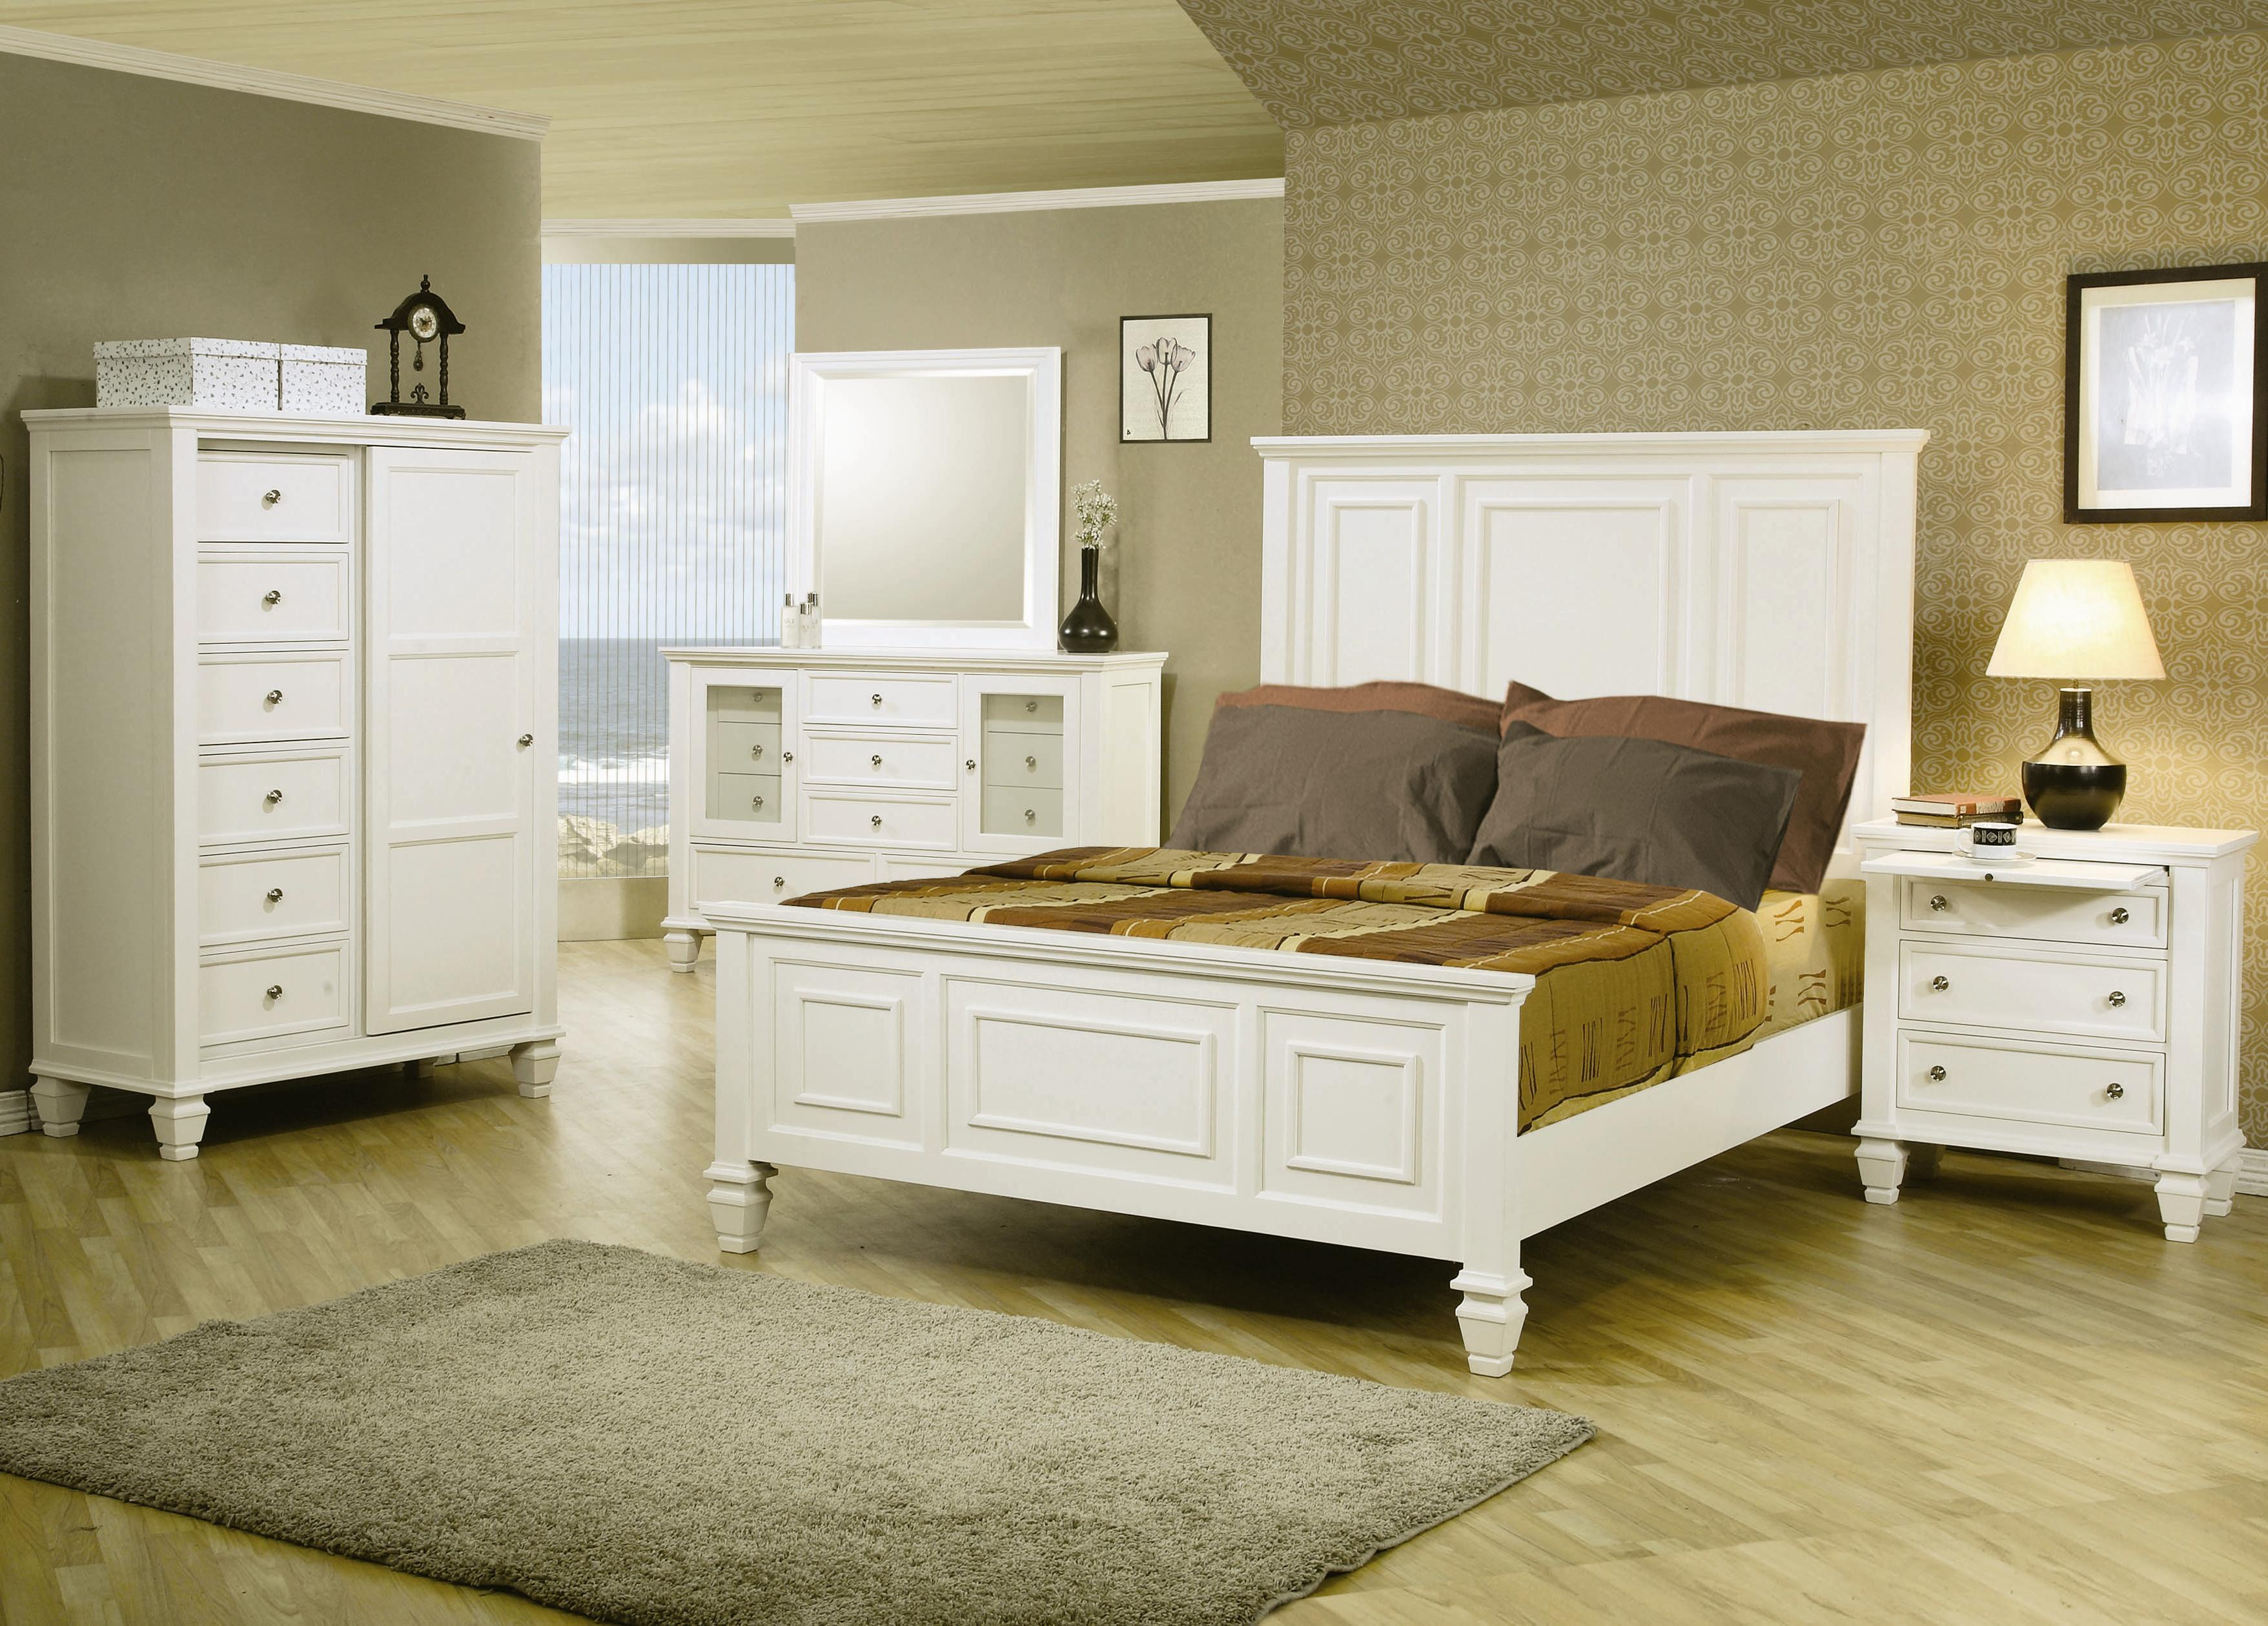 Coaster Sandy Beach Classic Queen High Headboard Bed Coaster - Big sandy bedroom furniture